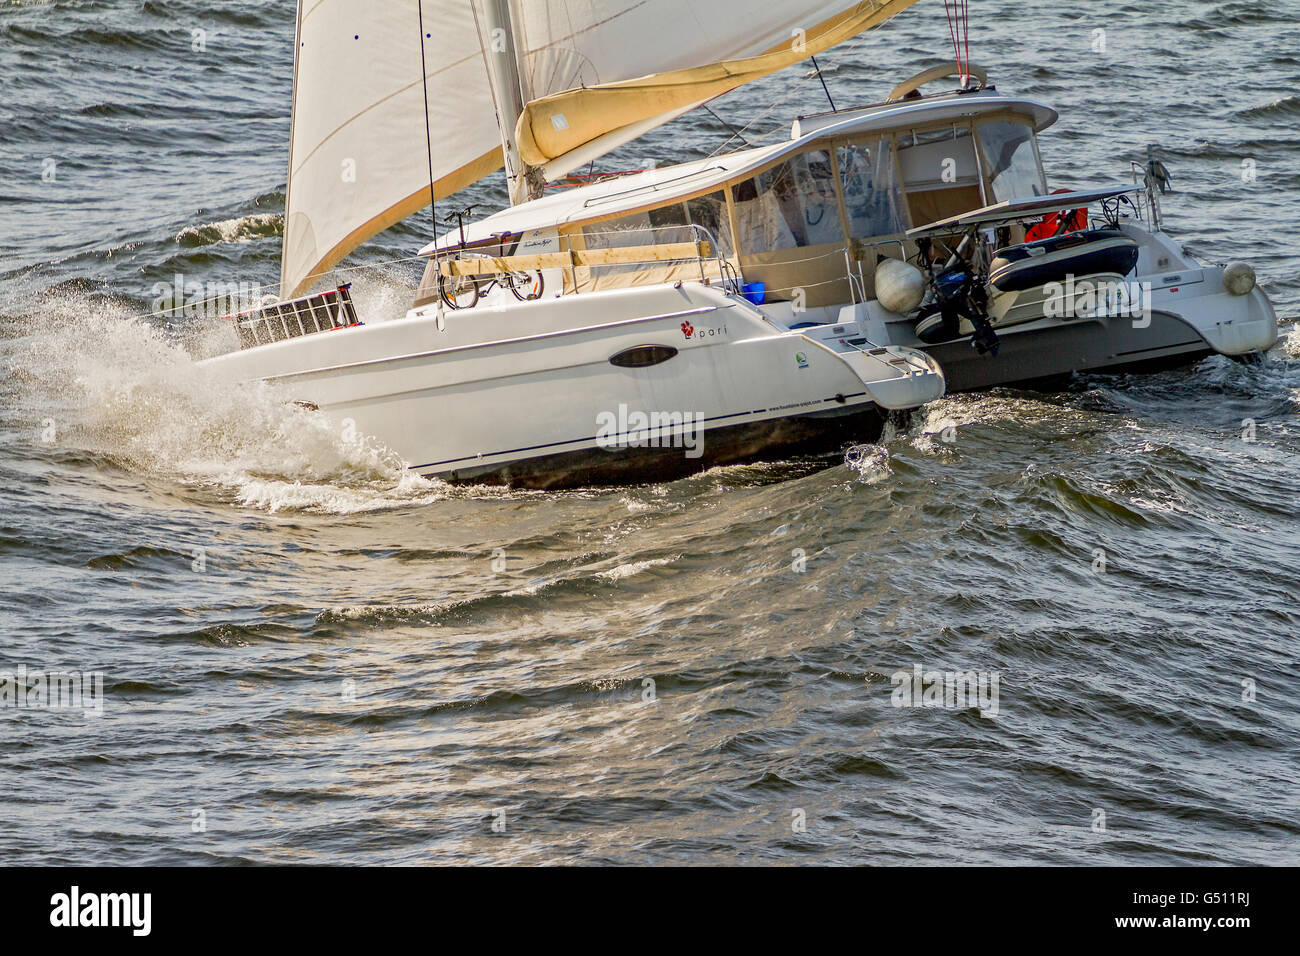 Yacht Caught In a Stormy Sea Oslo Fjord Norway Stock Photo